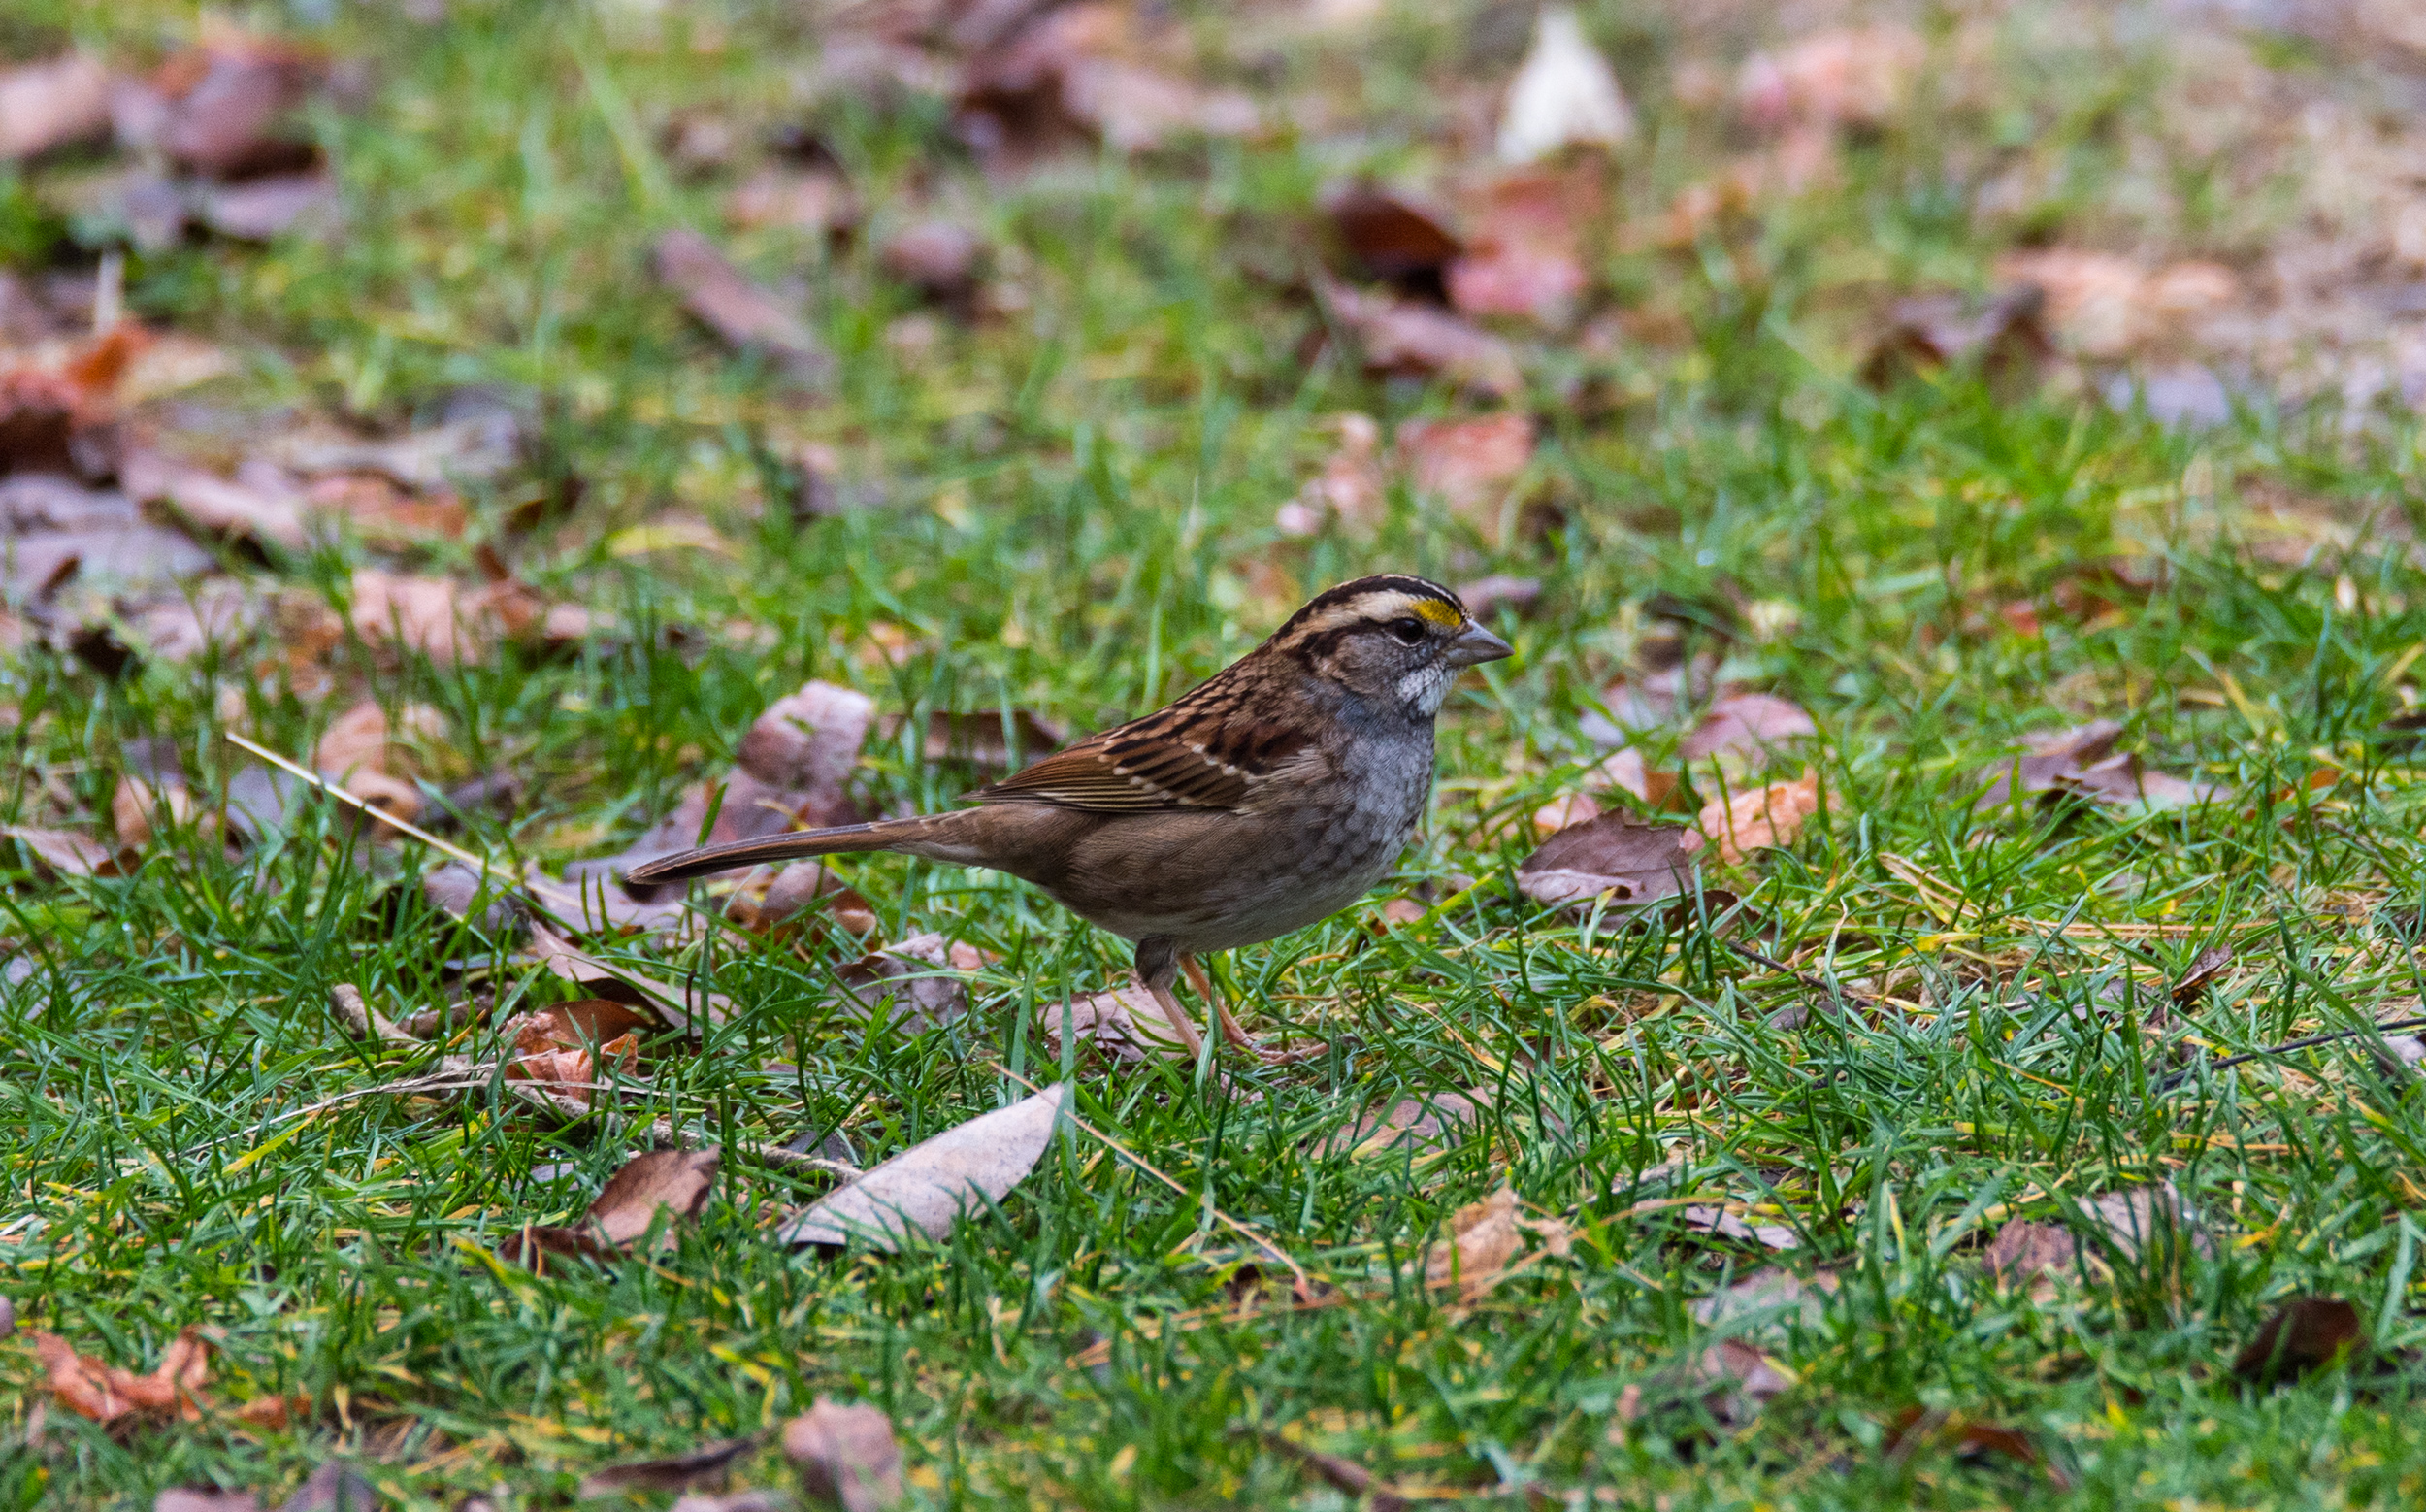 White-throated Sparrow, ノドジロシトド, Piermont, NY, United States